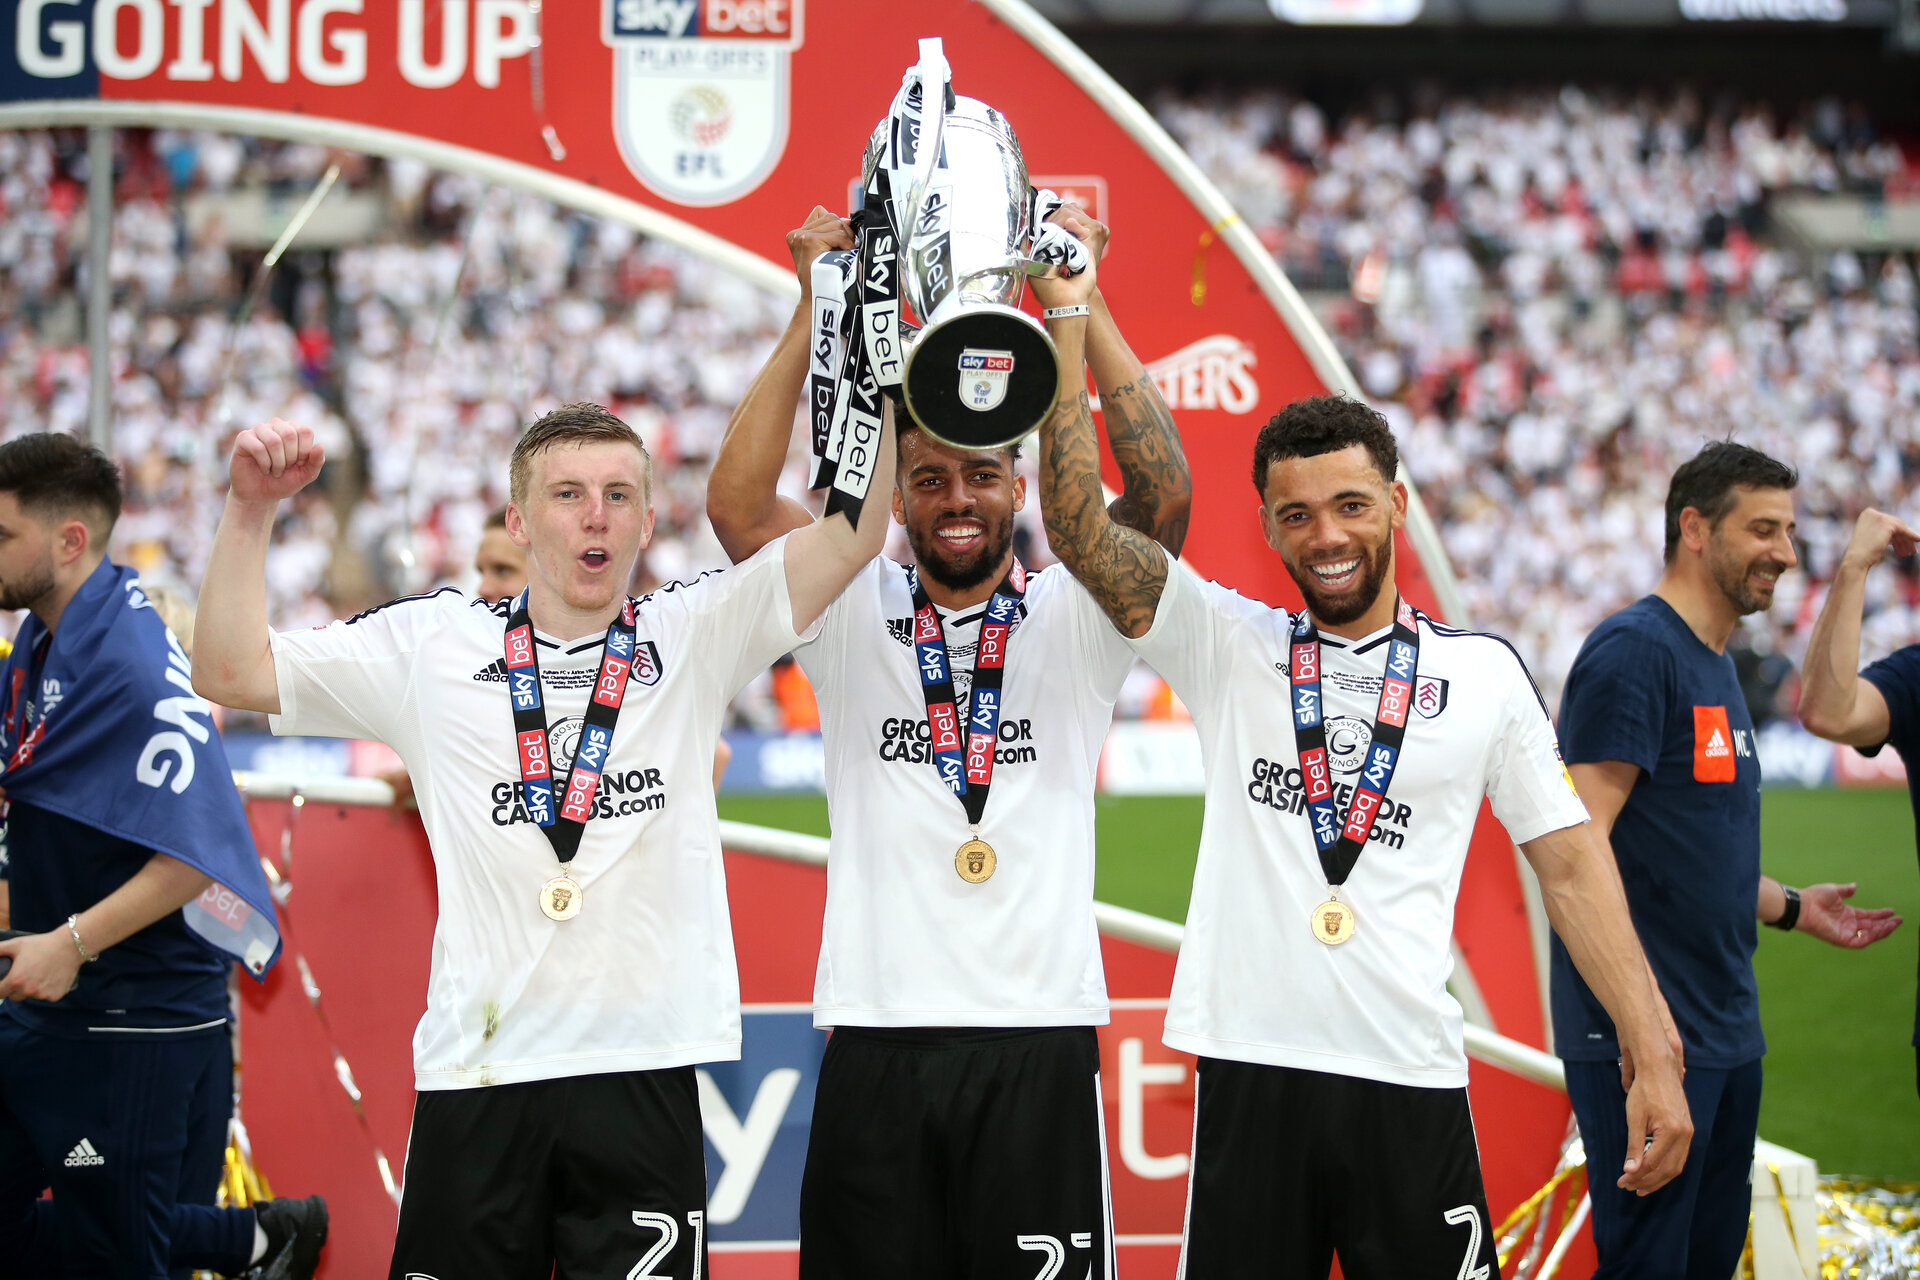 LONDON, ENGLAND - MAY 26:  Matt Targett of Fulham, Cyrus Christie of Fulham, and Ryan Fredericks of Fulham celebrate with the trophy following their sides victory in the Sky Bet Championship Play Off Final between Aston Villa and  Fulham at Wembley Stadium on May 26, 2018 in London, England.  (Photo by Alex Morton/Getty Images)